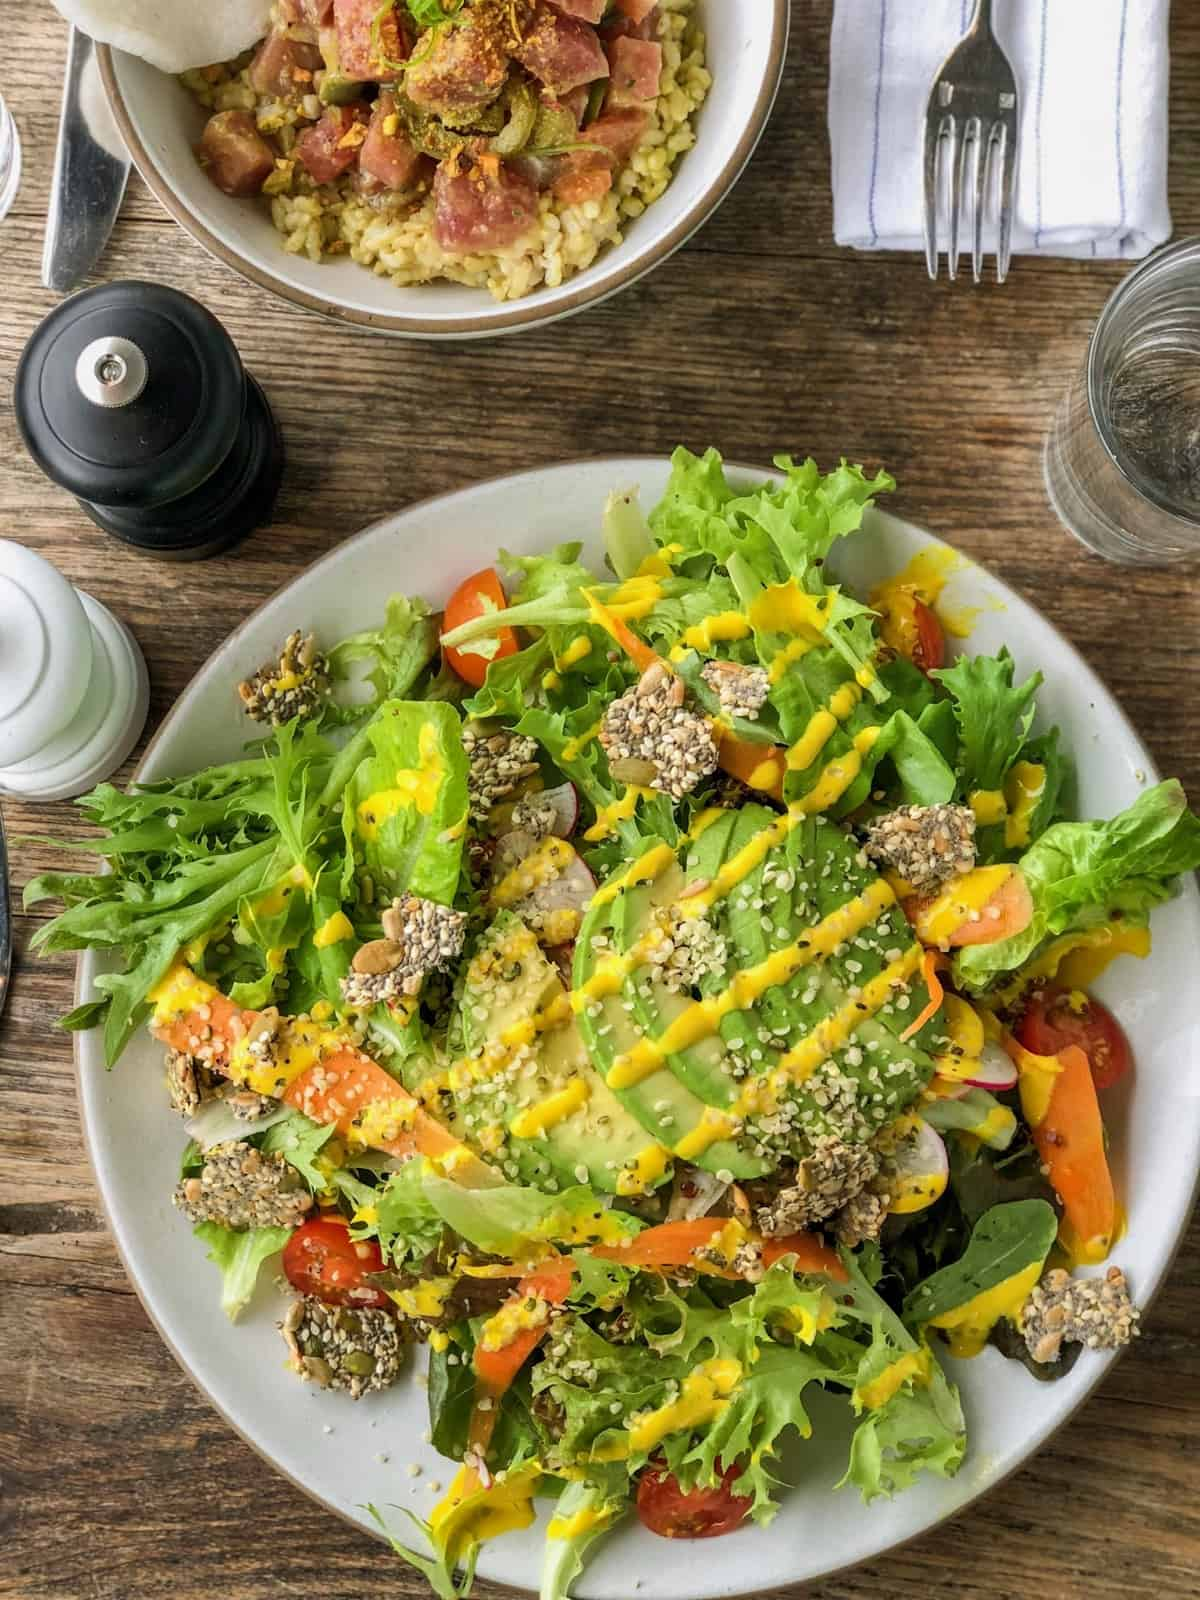 Salad topped with fresh veggies, avocado, and a turmeric tahini dressing